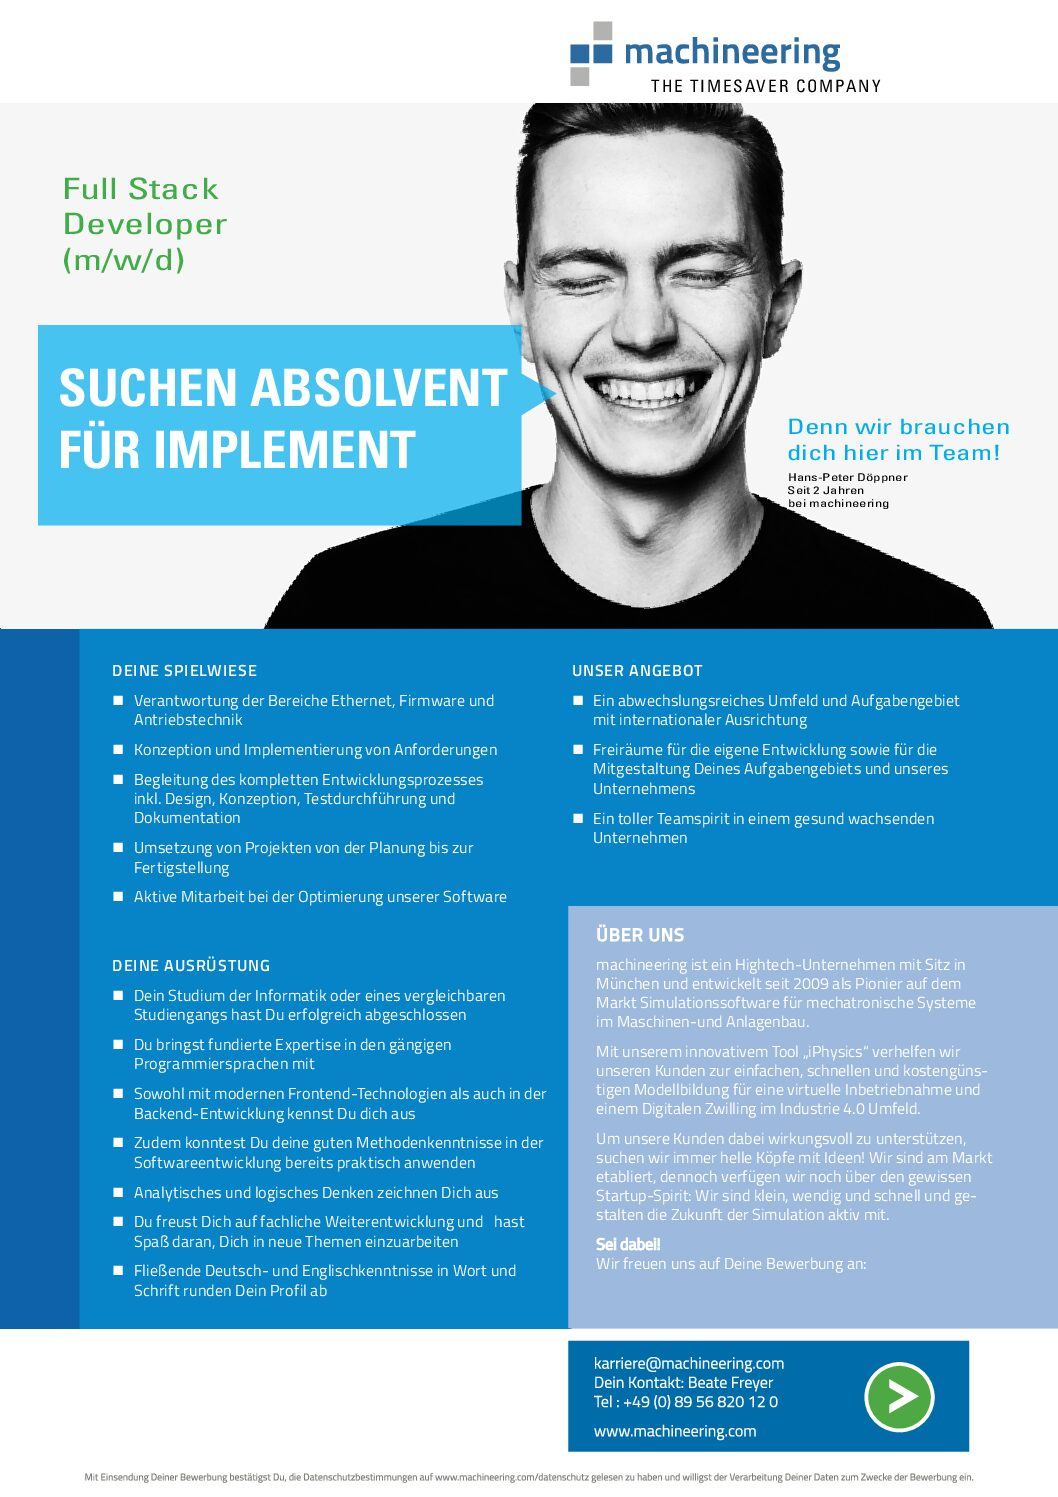 Full Stack Entwickler/in (m/w/d) Simulationssoftware